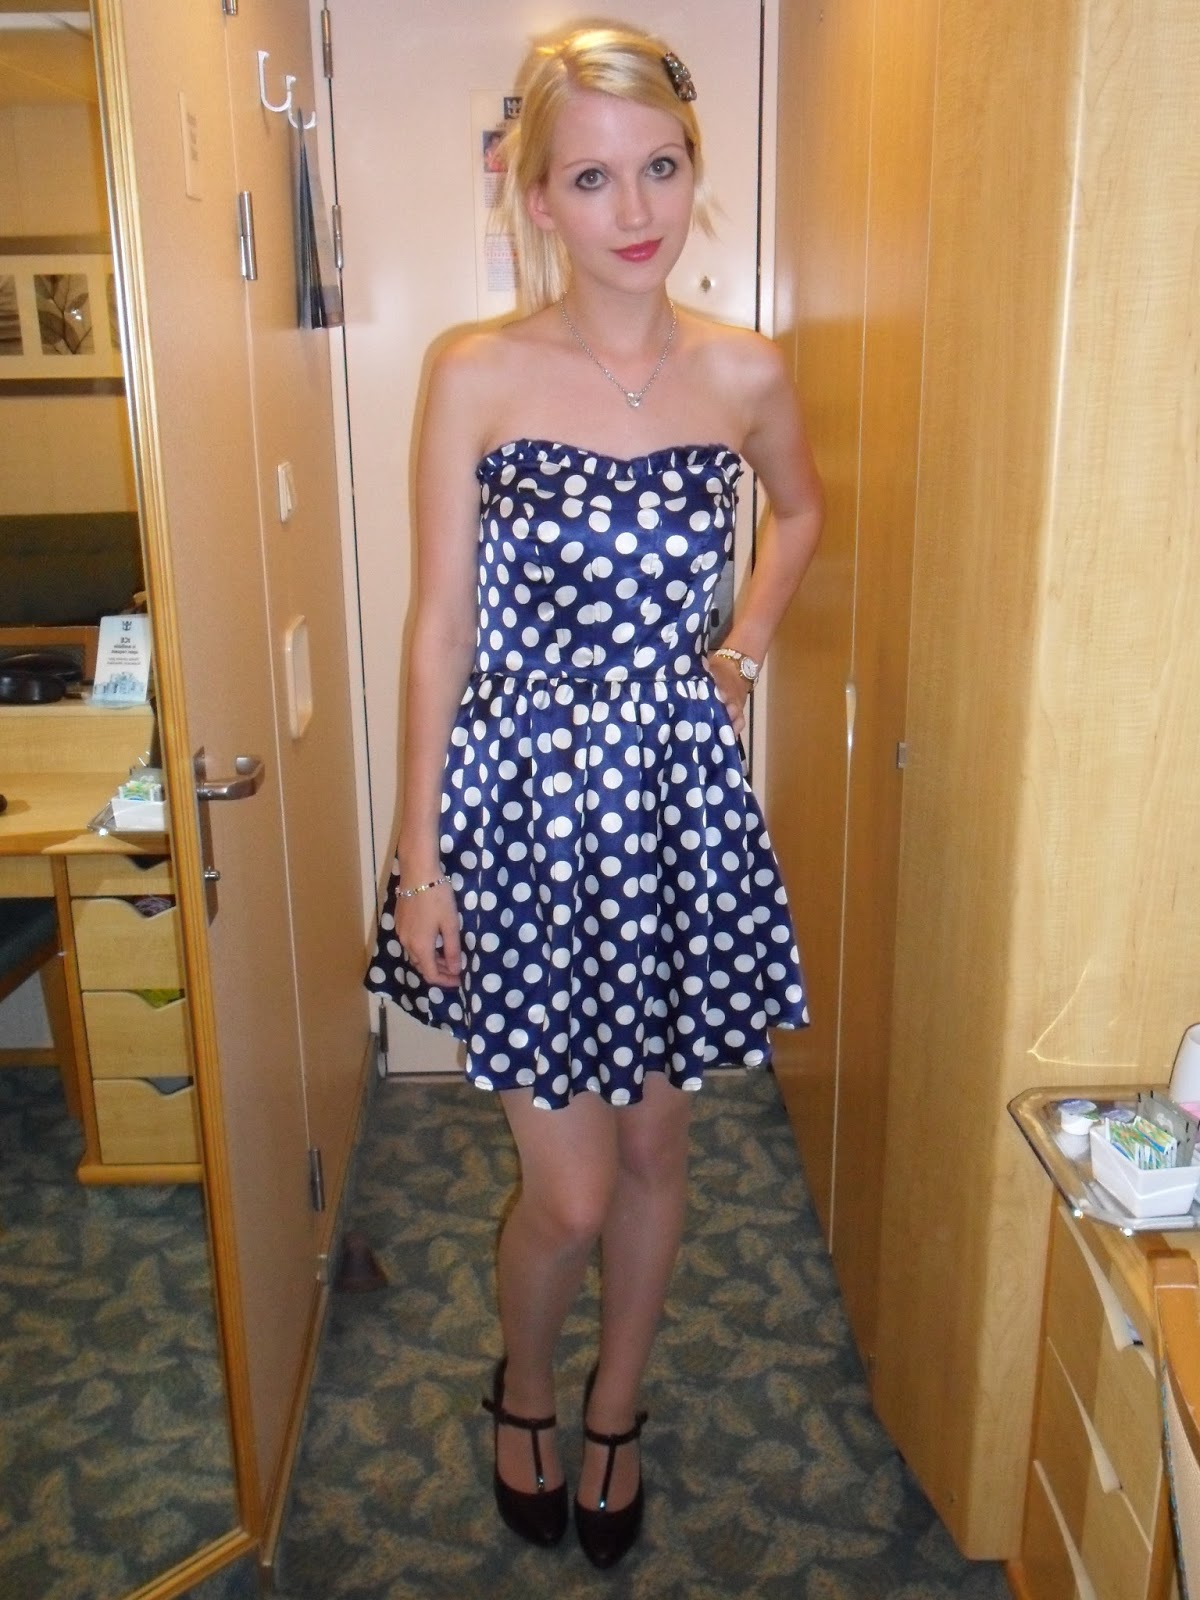 22d2e4aa2c1 Dress – Honestly can t remember! Shoes – Marks and Spencer